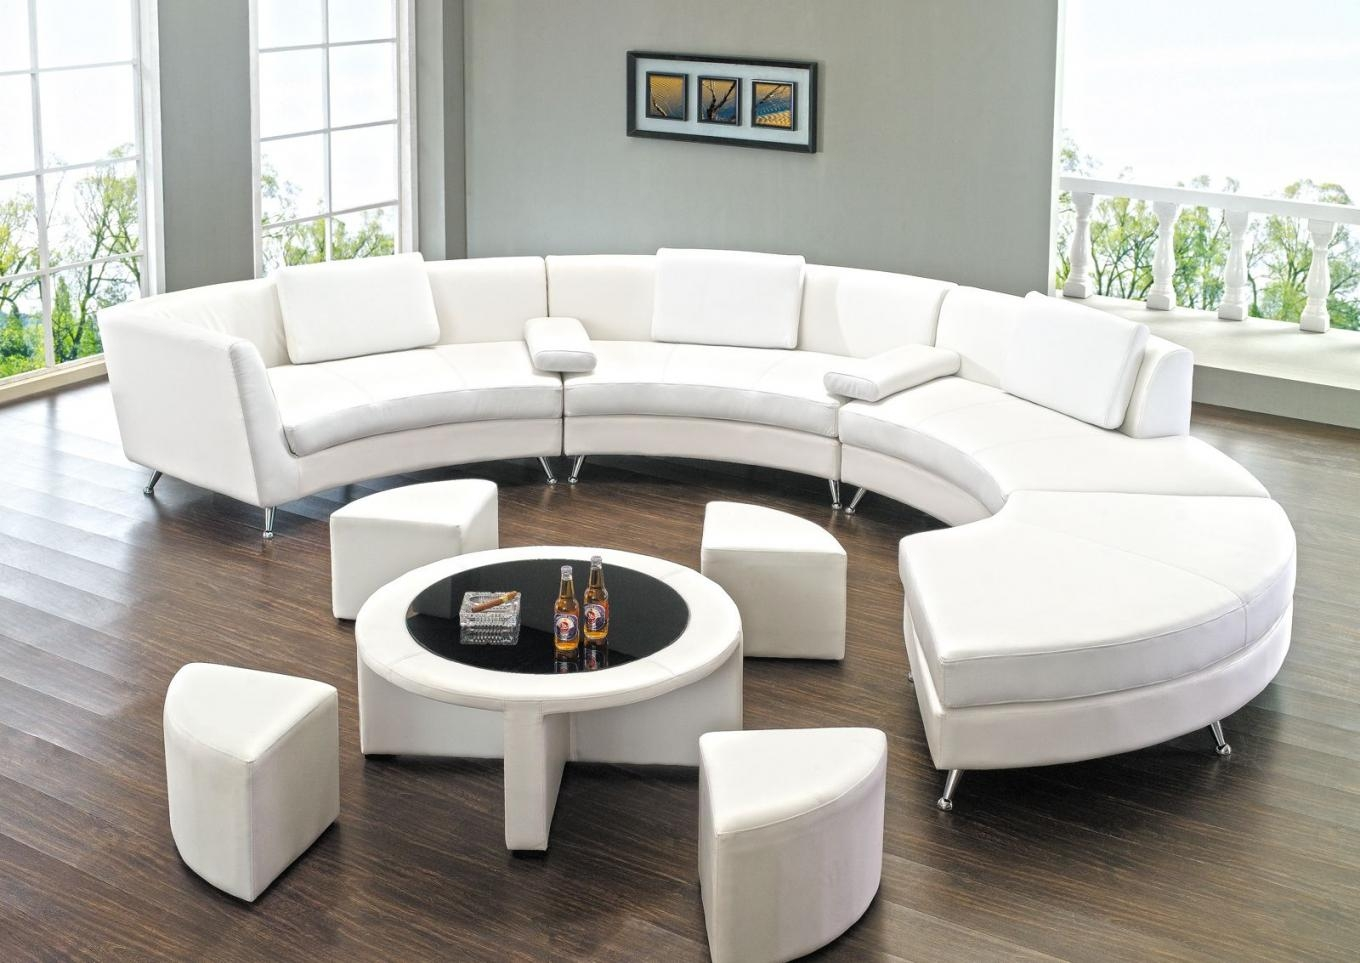 rounded sofa bed nailhead trim reclining 20 collection of round sectional ideas